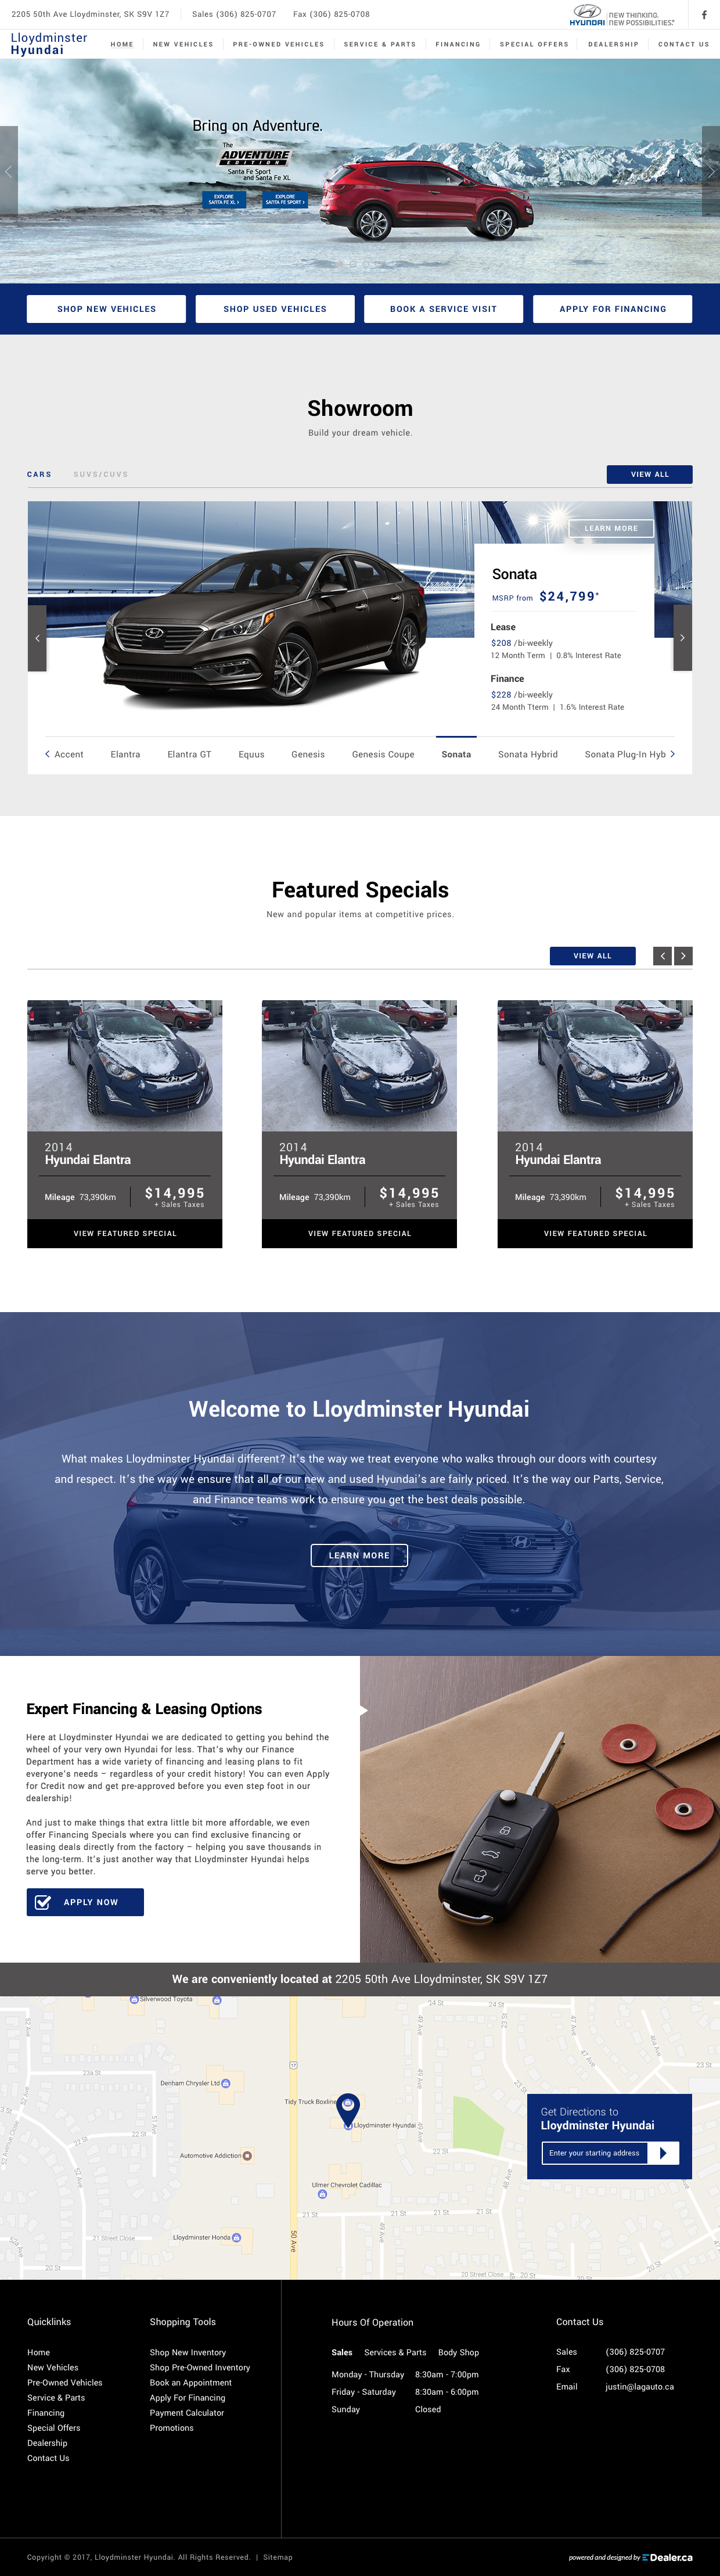 LloydminsterHyundai-1240px-final